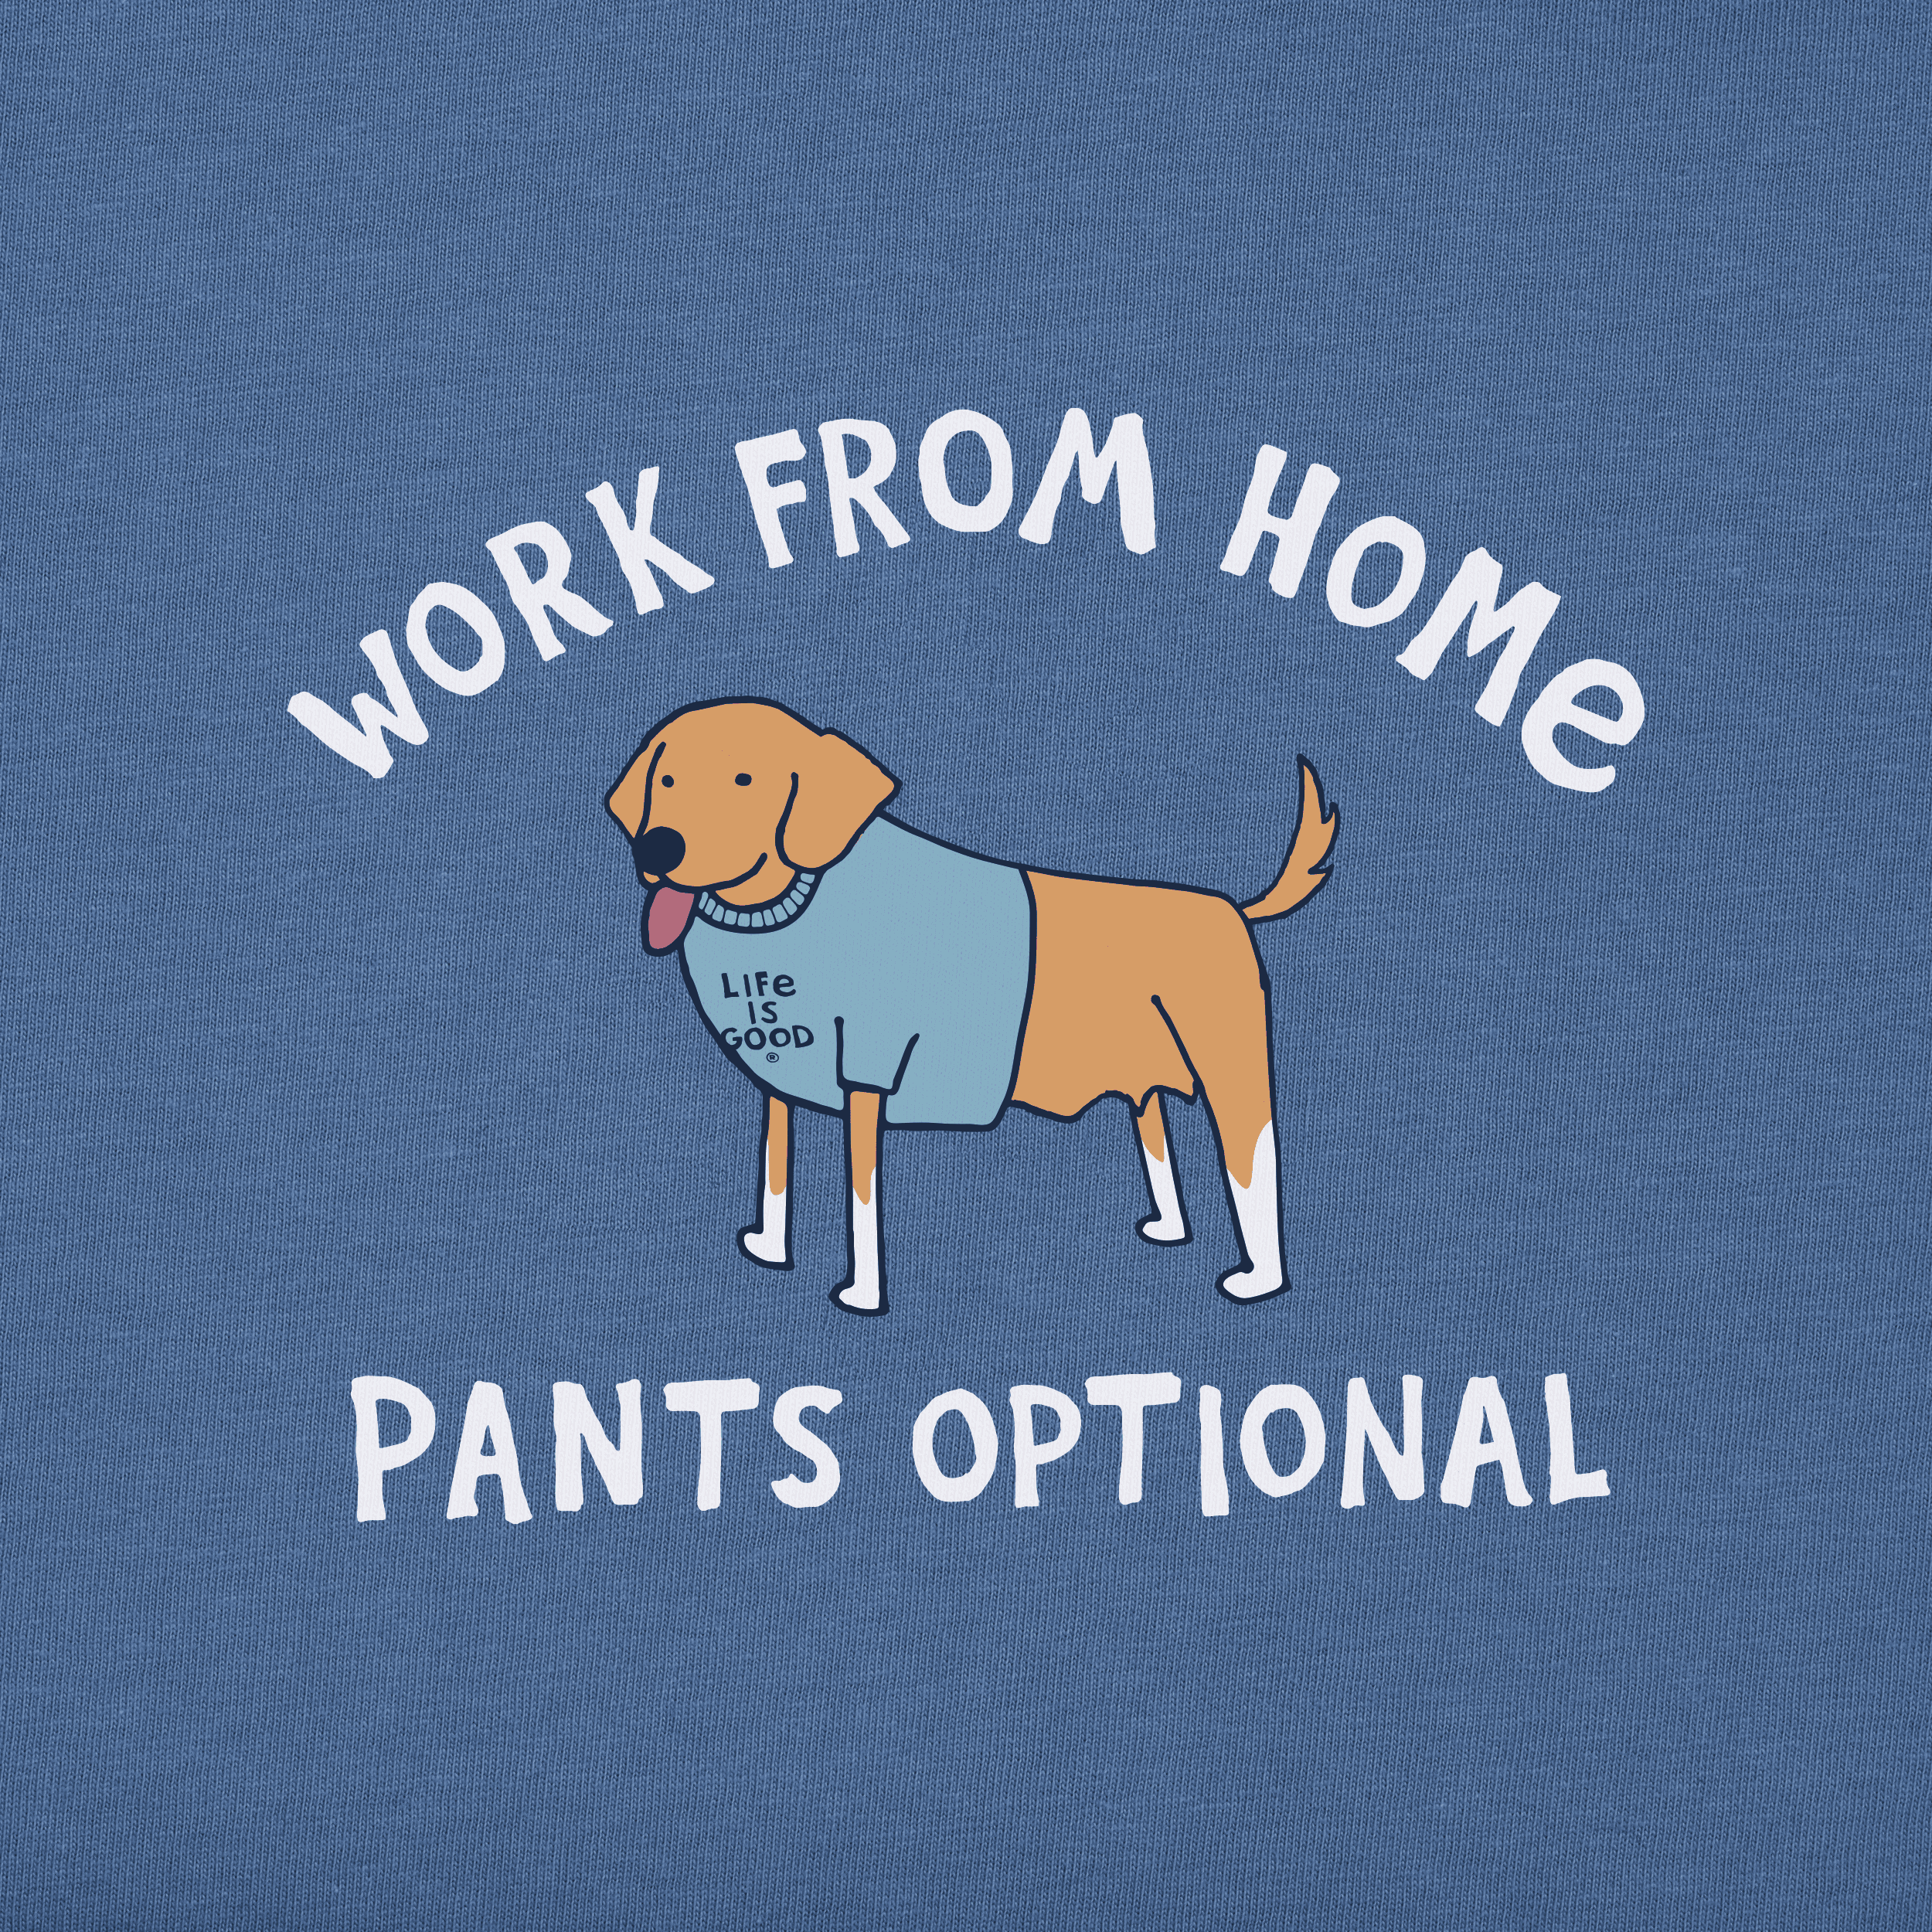 work from home pants optional dog